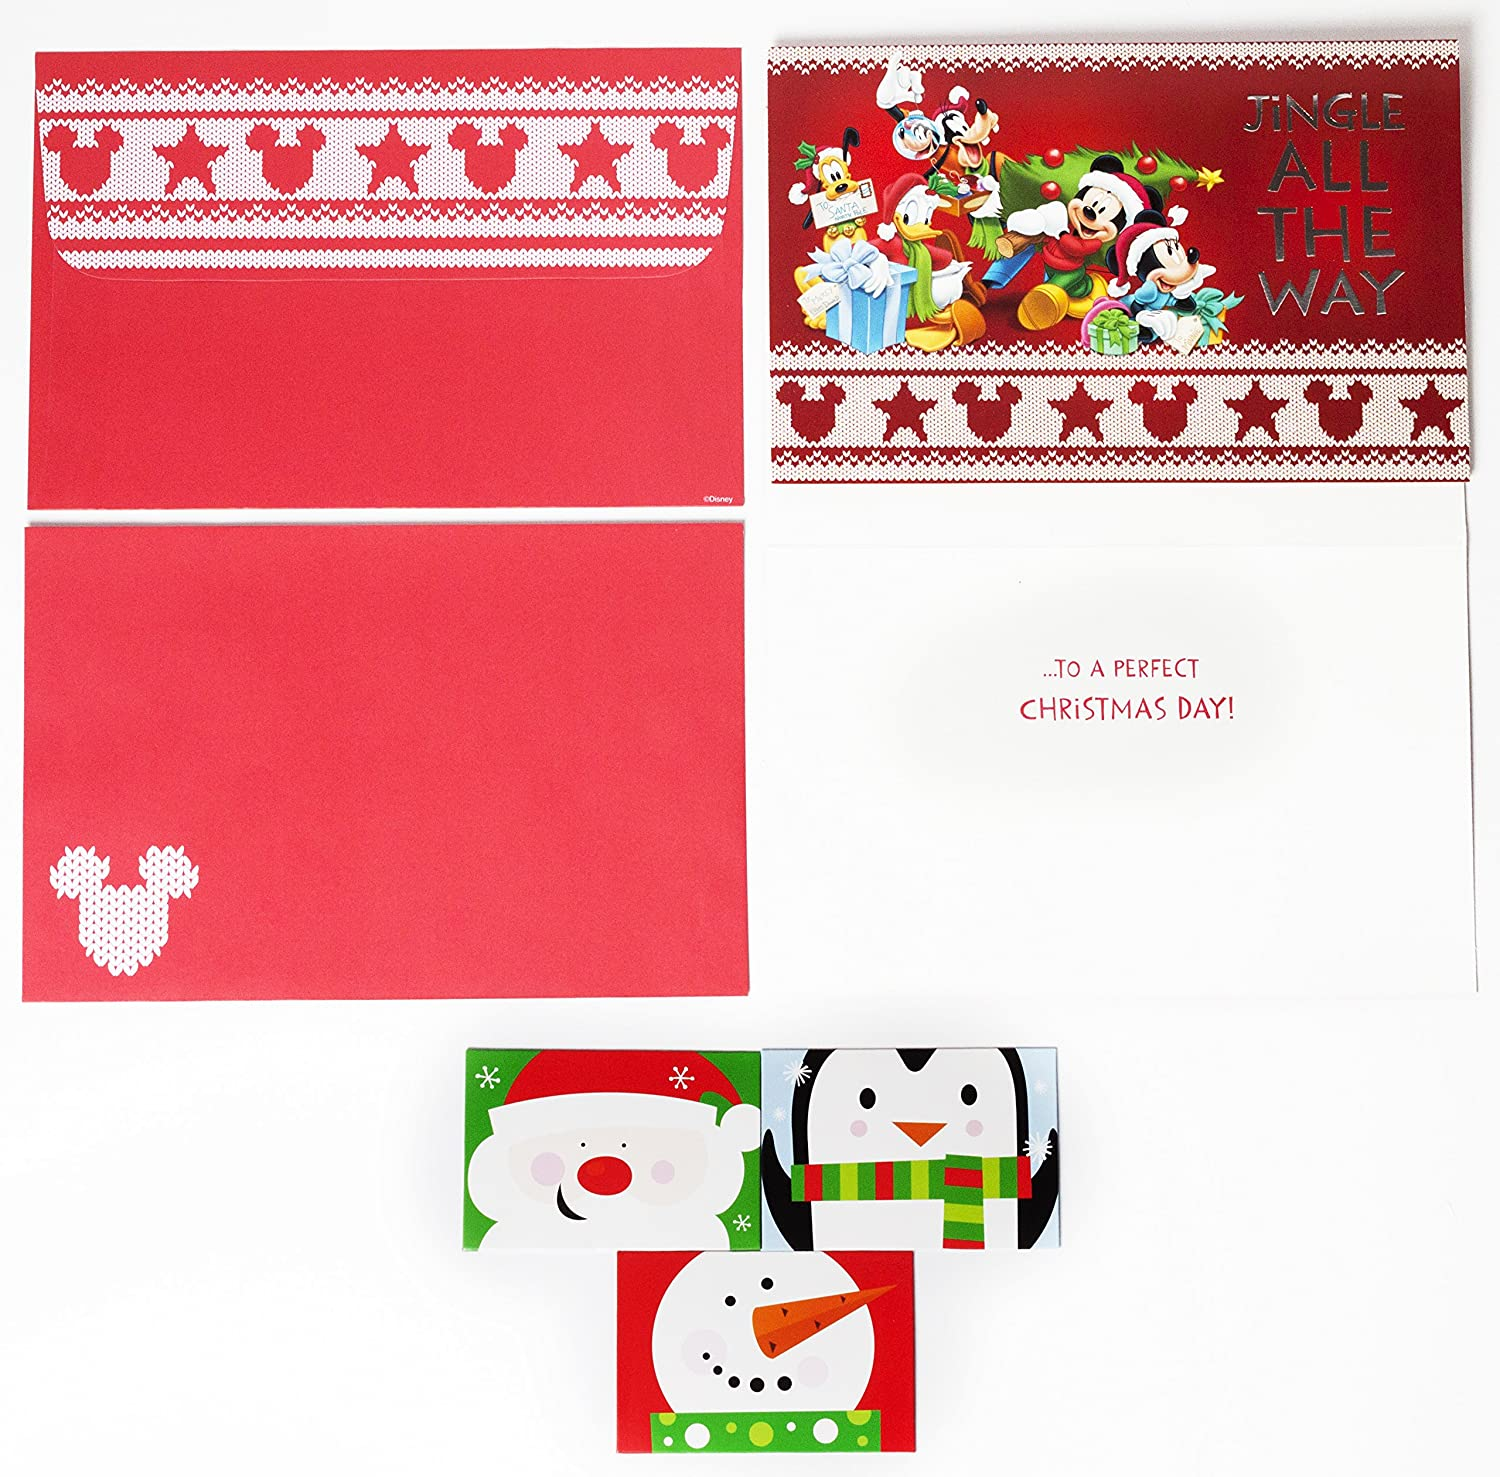 Disney mickey mouse christmas cards box set of 18 holiday greeting disney mickey mouse christmas cards box set of 18 holiday greeting cards with self sealing envelopes and 3 gift card holders amazon office products kristyandbryce Choice Image